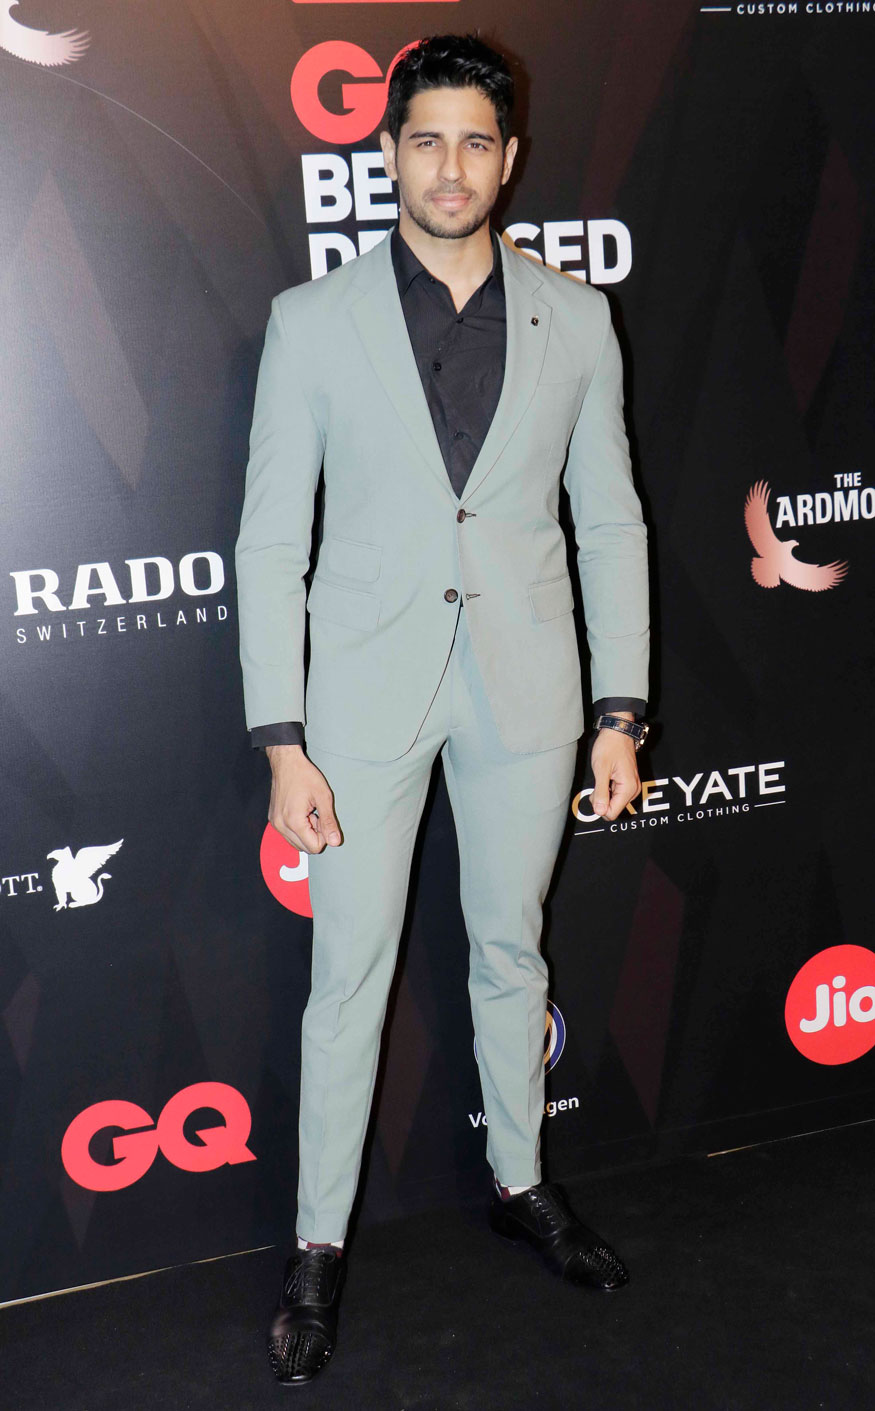 Varun Dhawan and Sidharth Malhotra Attends The GQ Best Dressed Awards Event